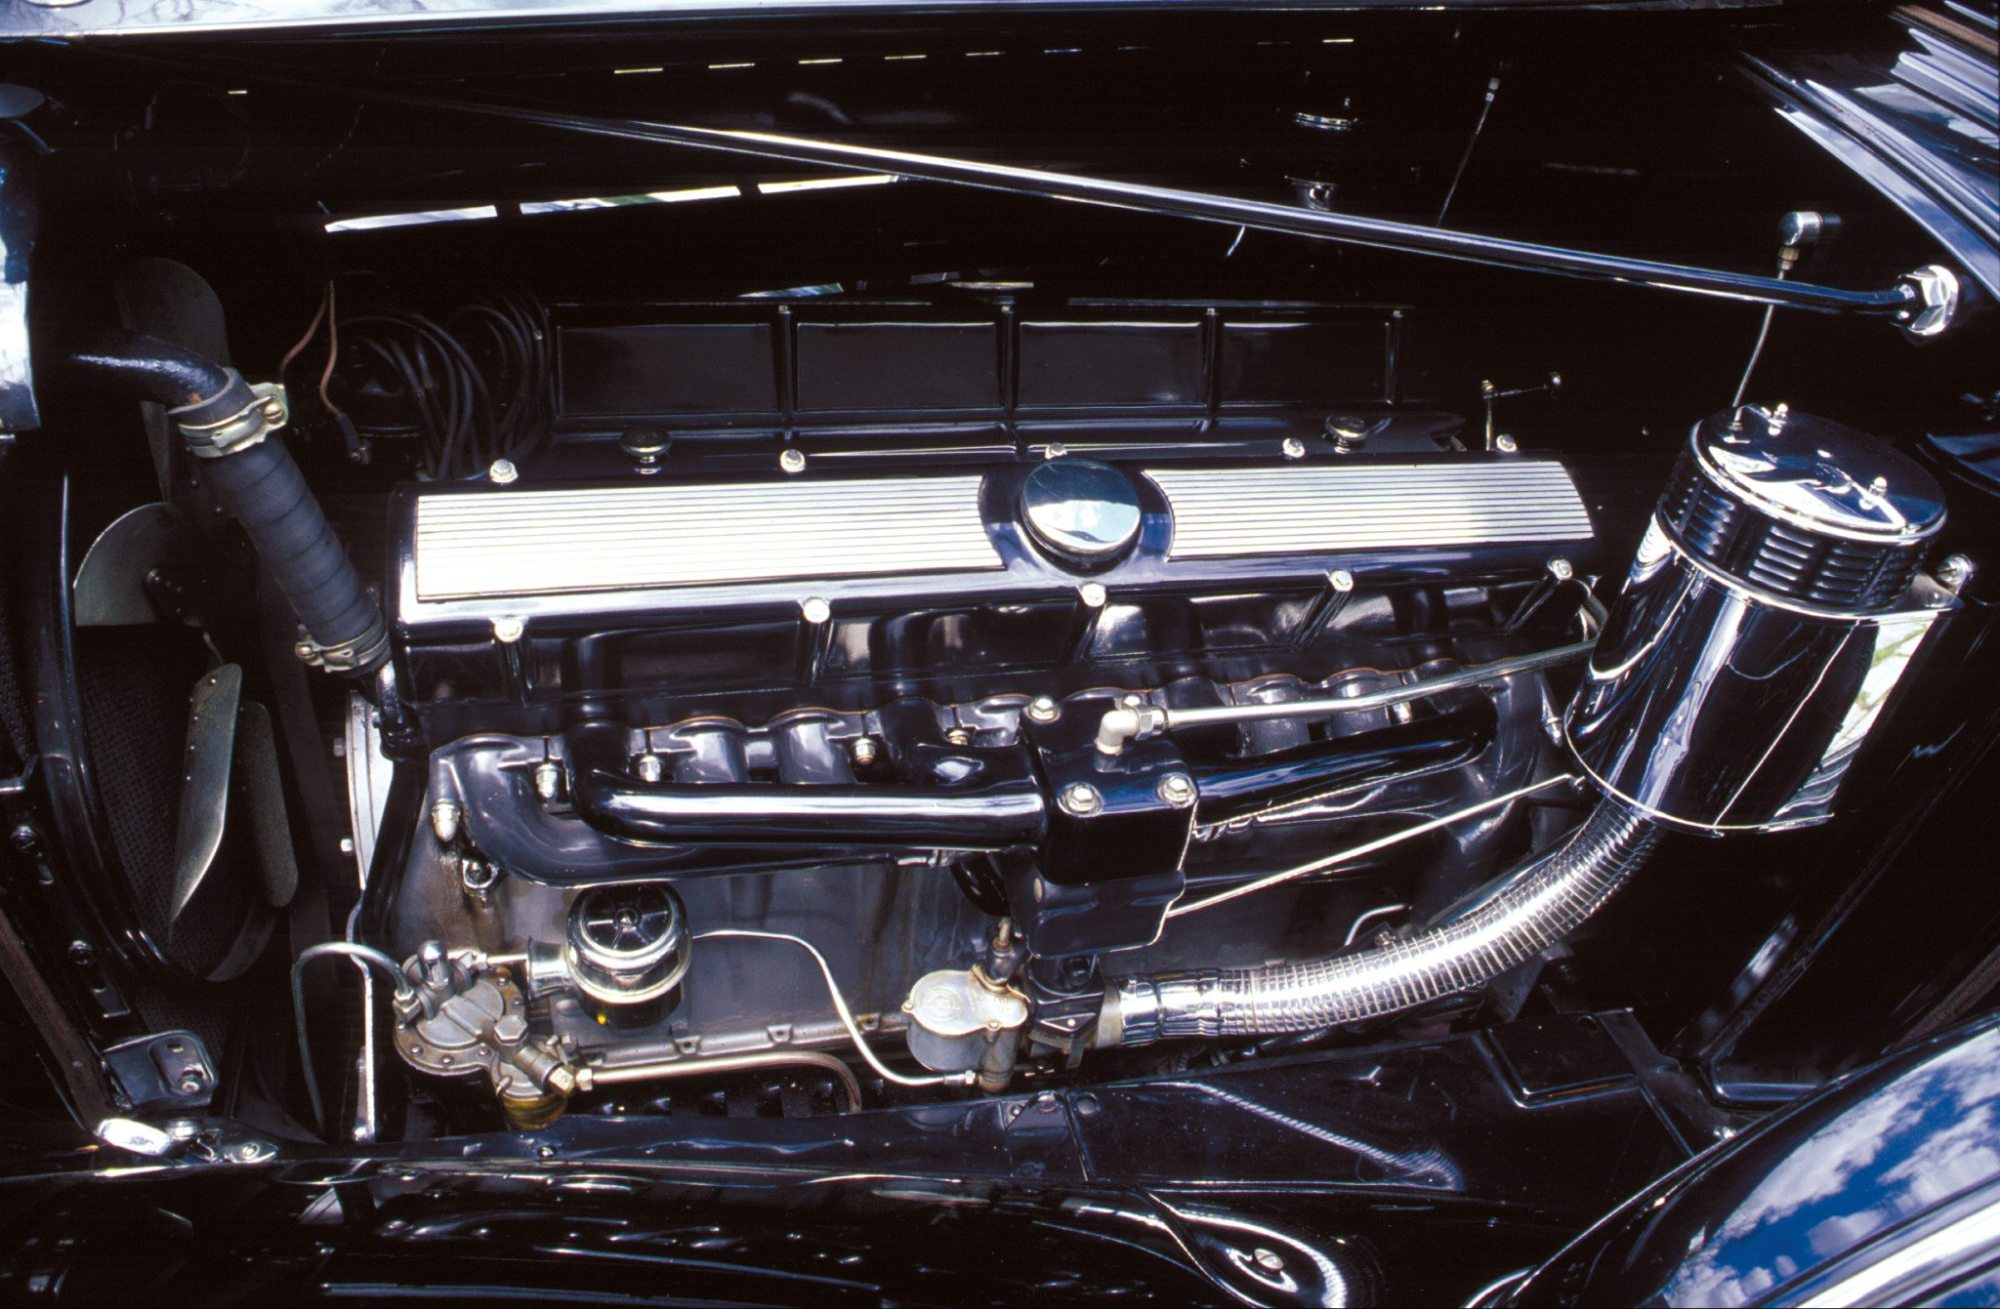 hight resolution of v16 engine cadillac aero dynamic coupe by fleetwood